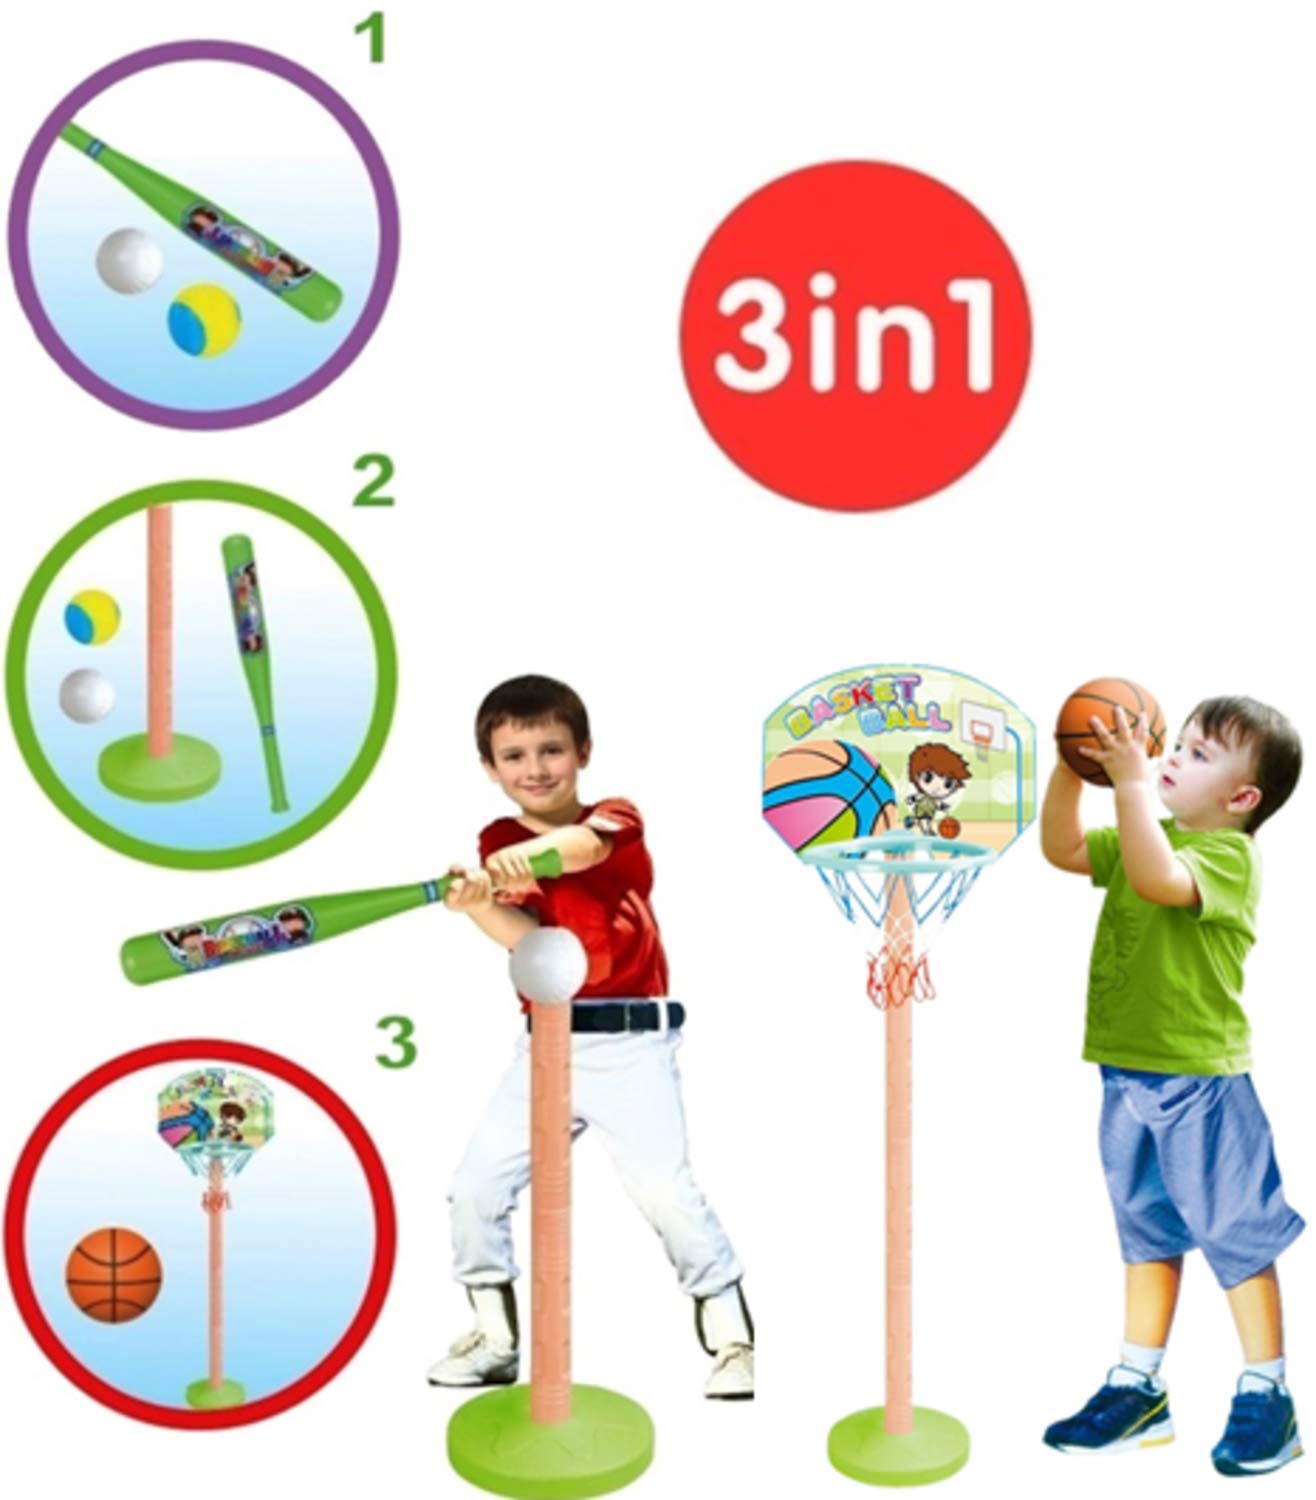 T- Ball Set Baseball Tee & Basketball Hoop for Kids 3-in-1, adjustible T - Starting kit for Toddler - Toy for Boys & Girls Age 3-5 Yrs Old - Perfect to Improve Batting & Aiming Skills by E&D Toys